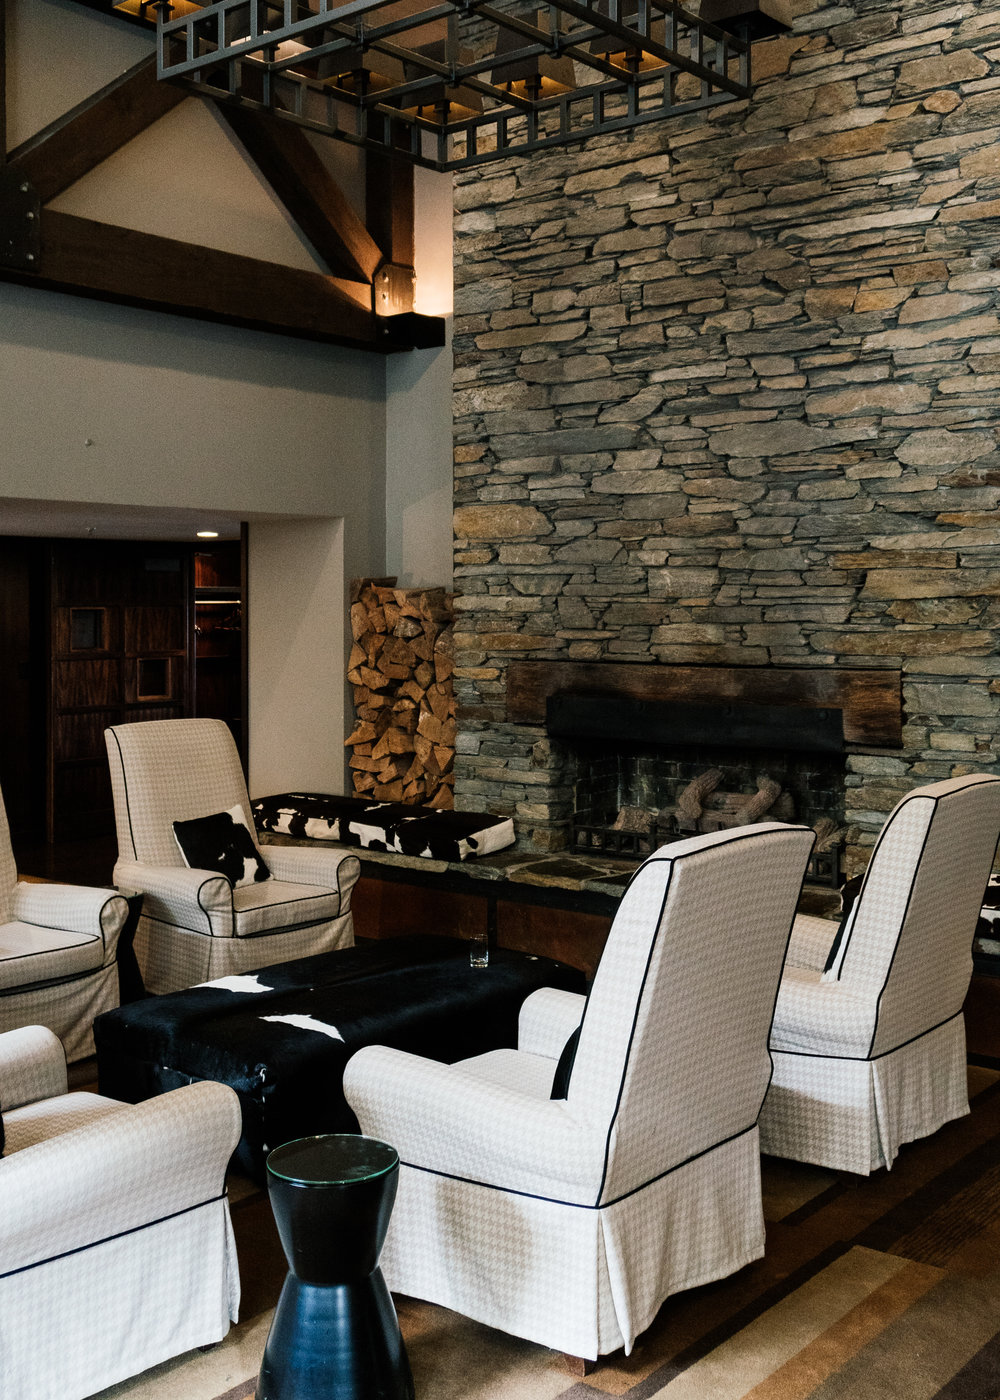 The lobby. Imagine here, winter and sitting by the fire sipping hot chocolate. Can't stop thinking about those  Patagonia Chocolates !